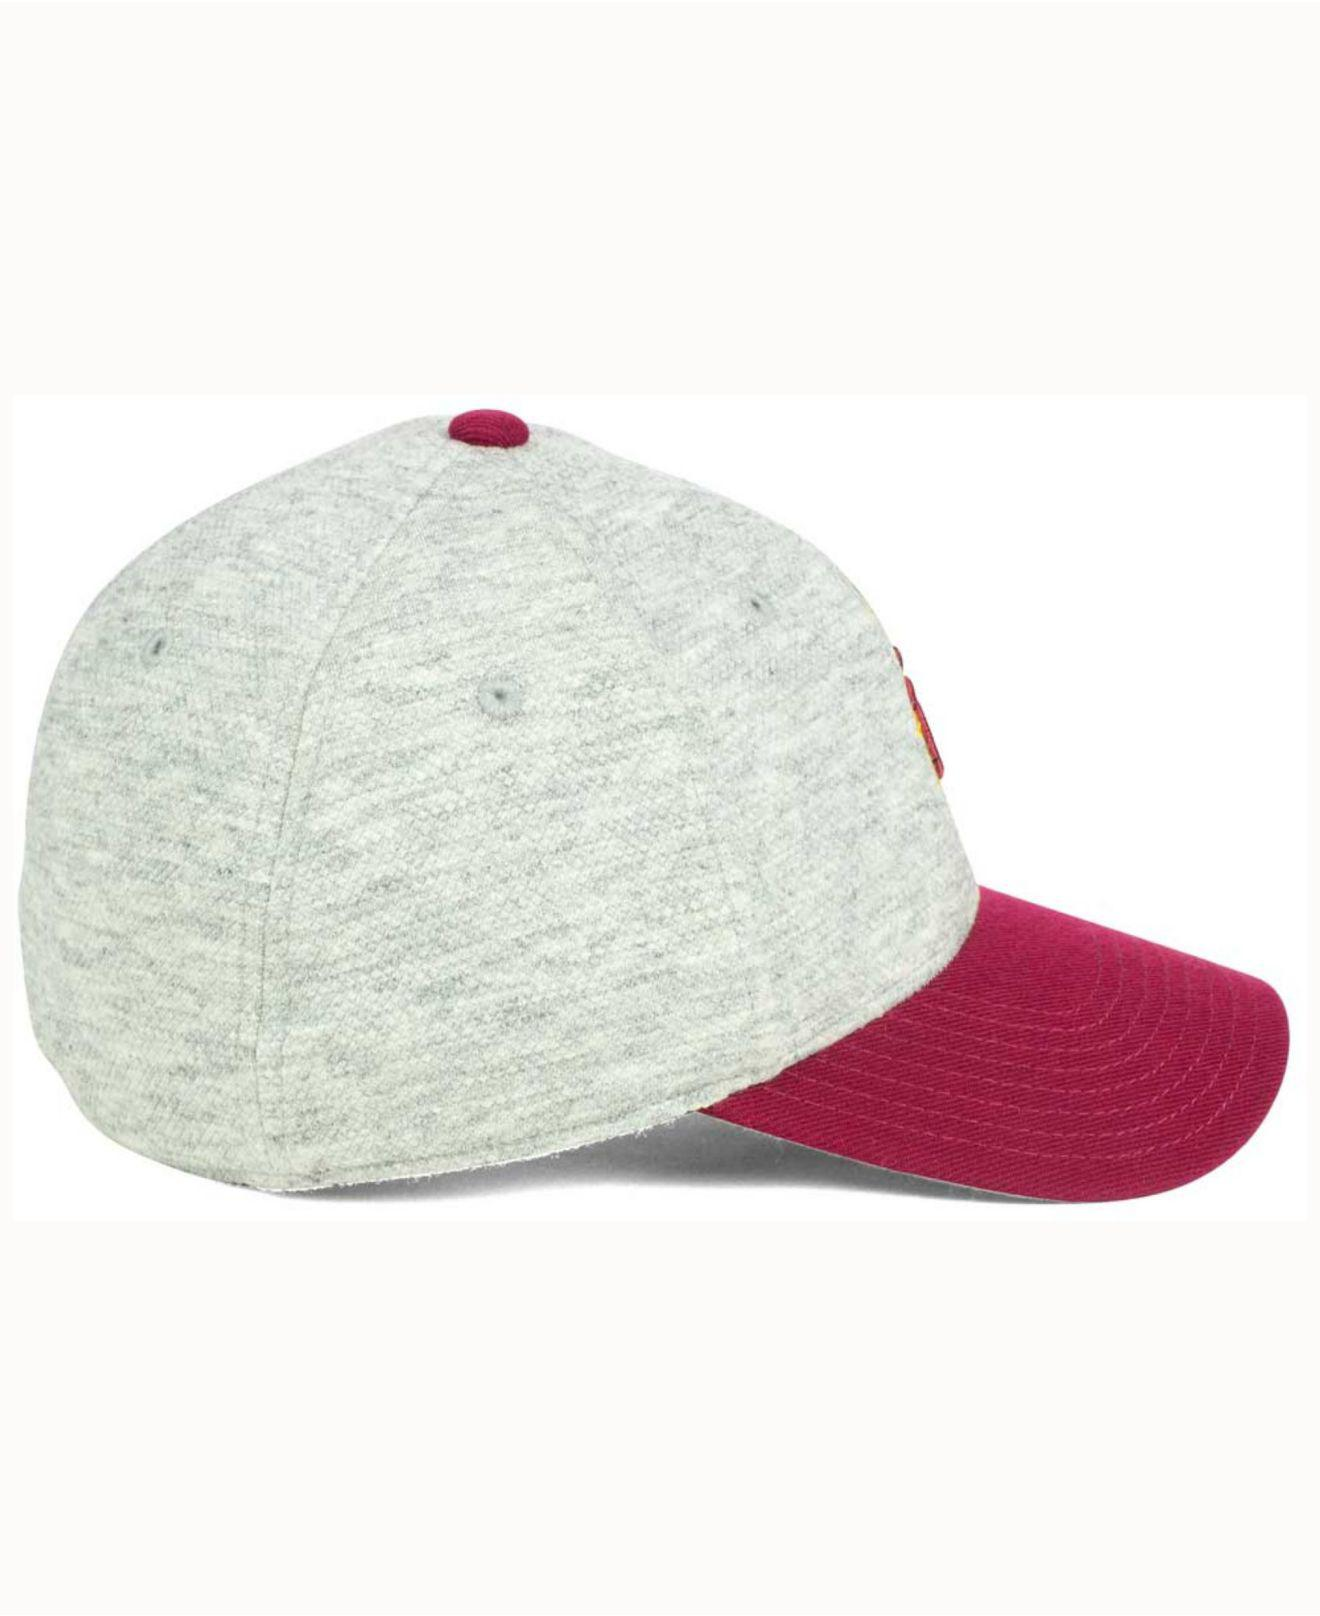 0d627325b92 Adidas - Multicolor Fog Flex Cap for Men - Lyst. View fullscreen